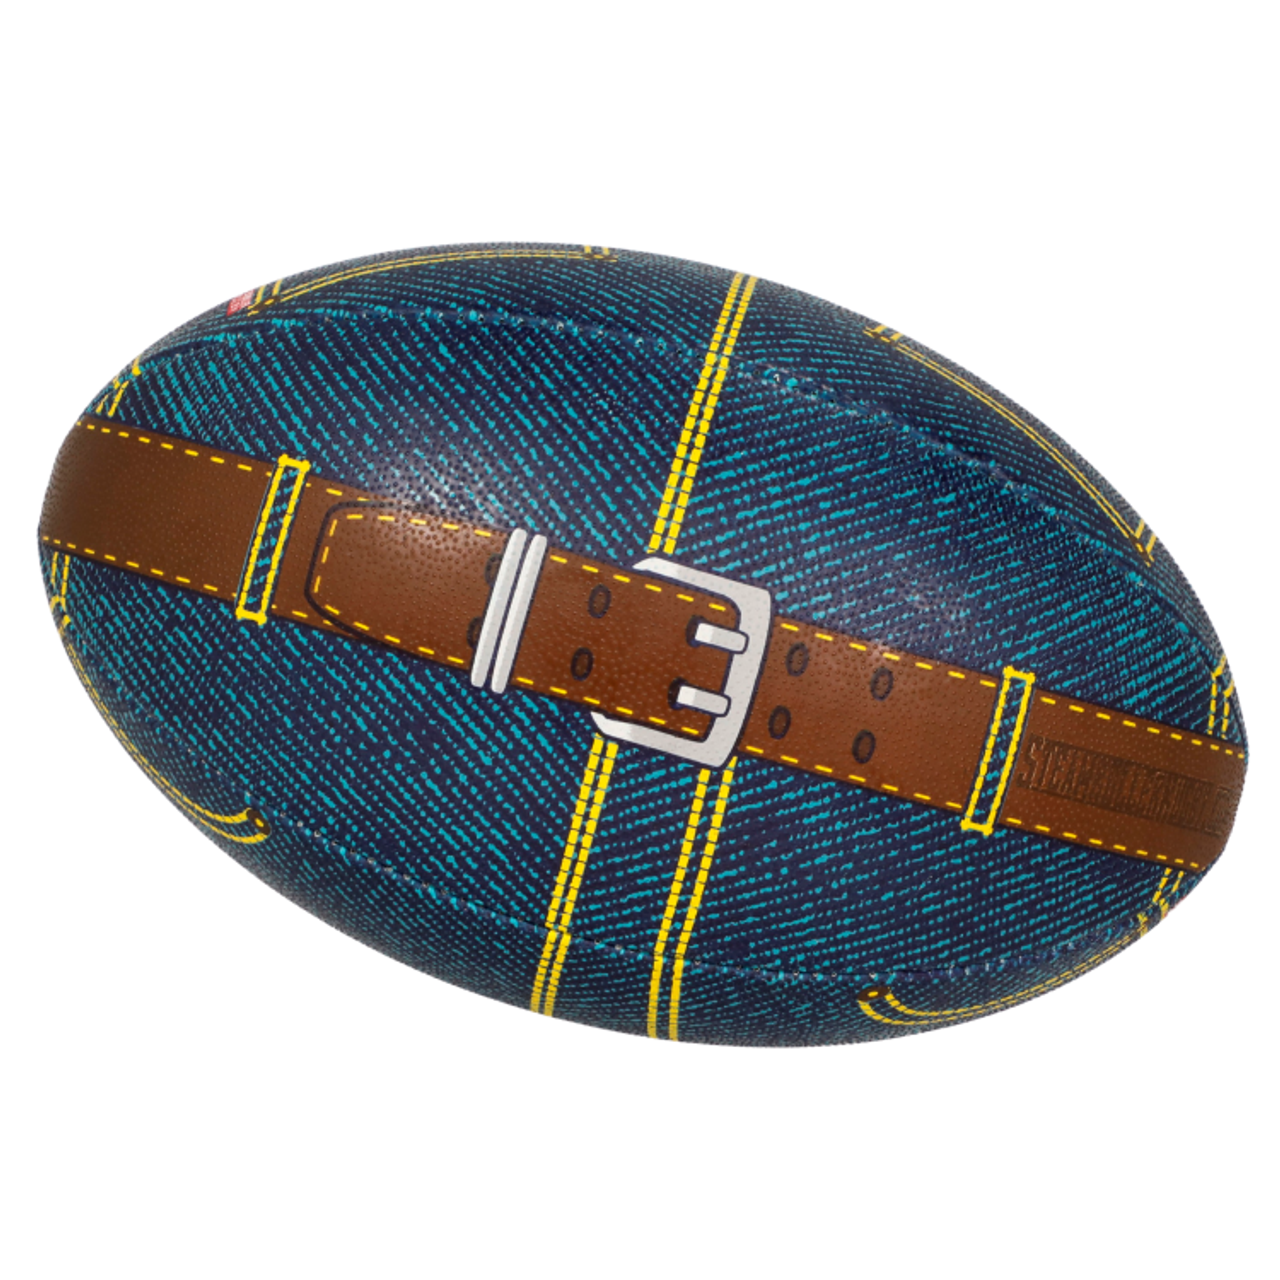 Blue Jean Size 5 Rugby Ball